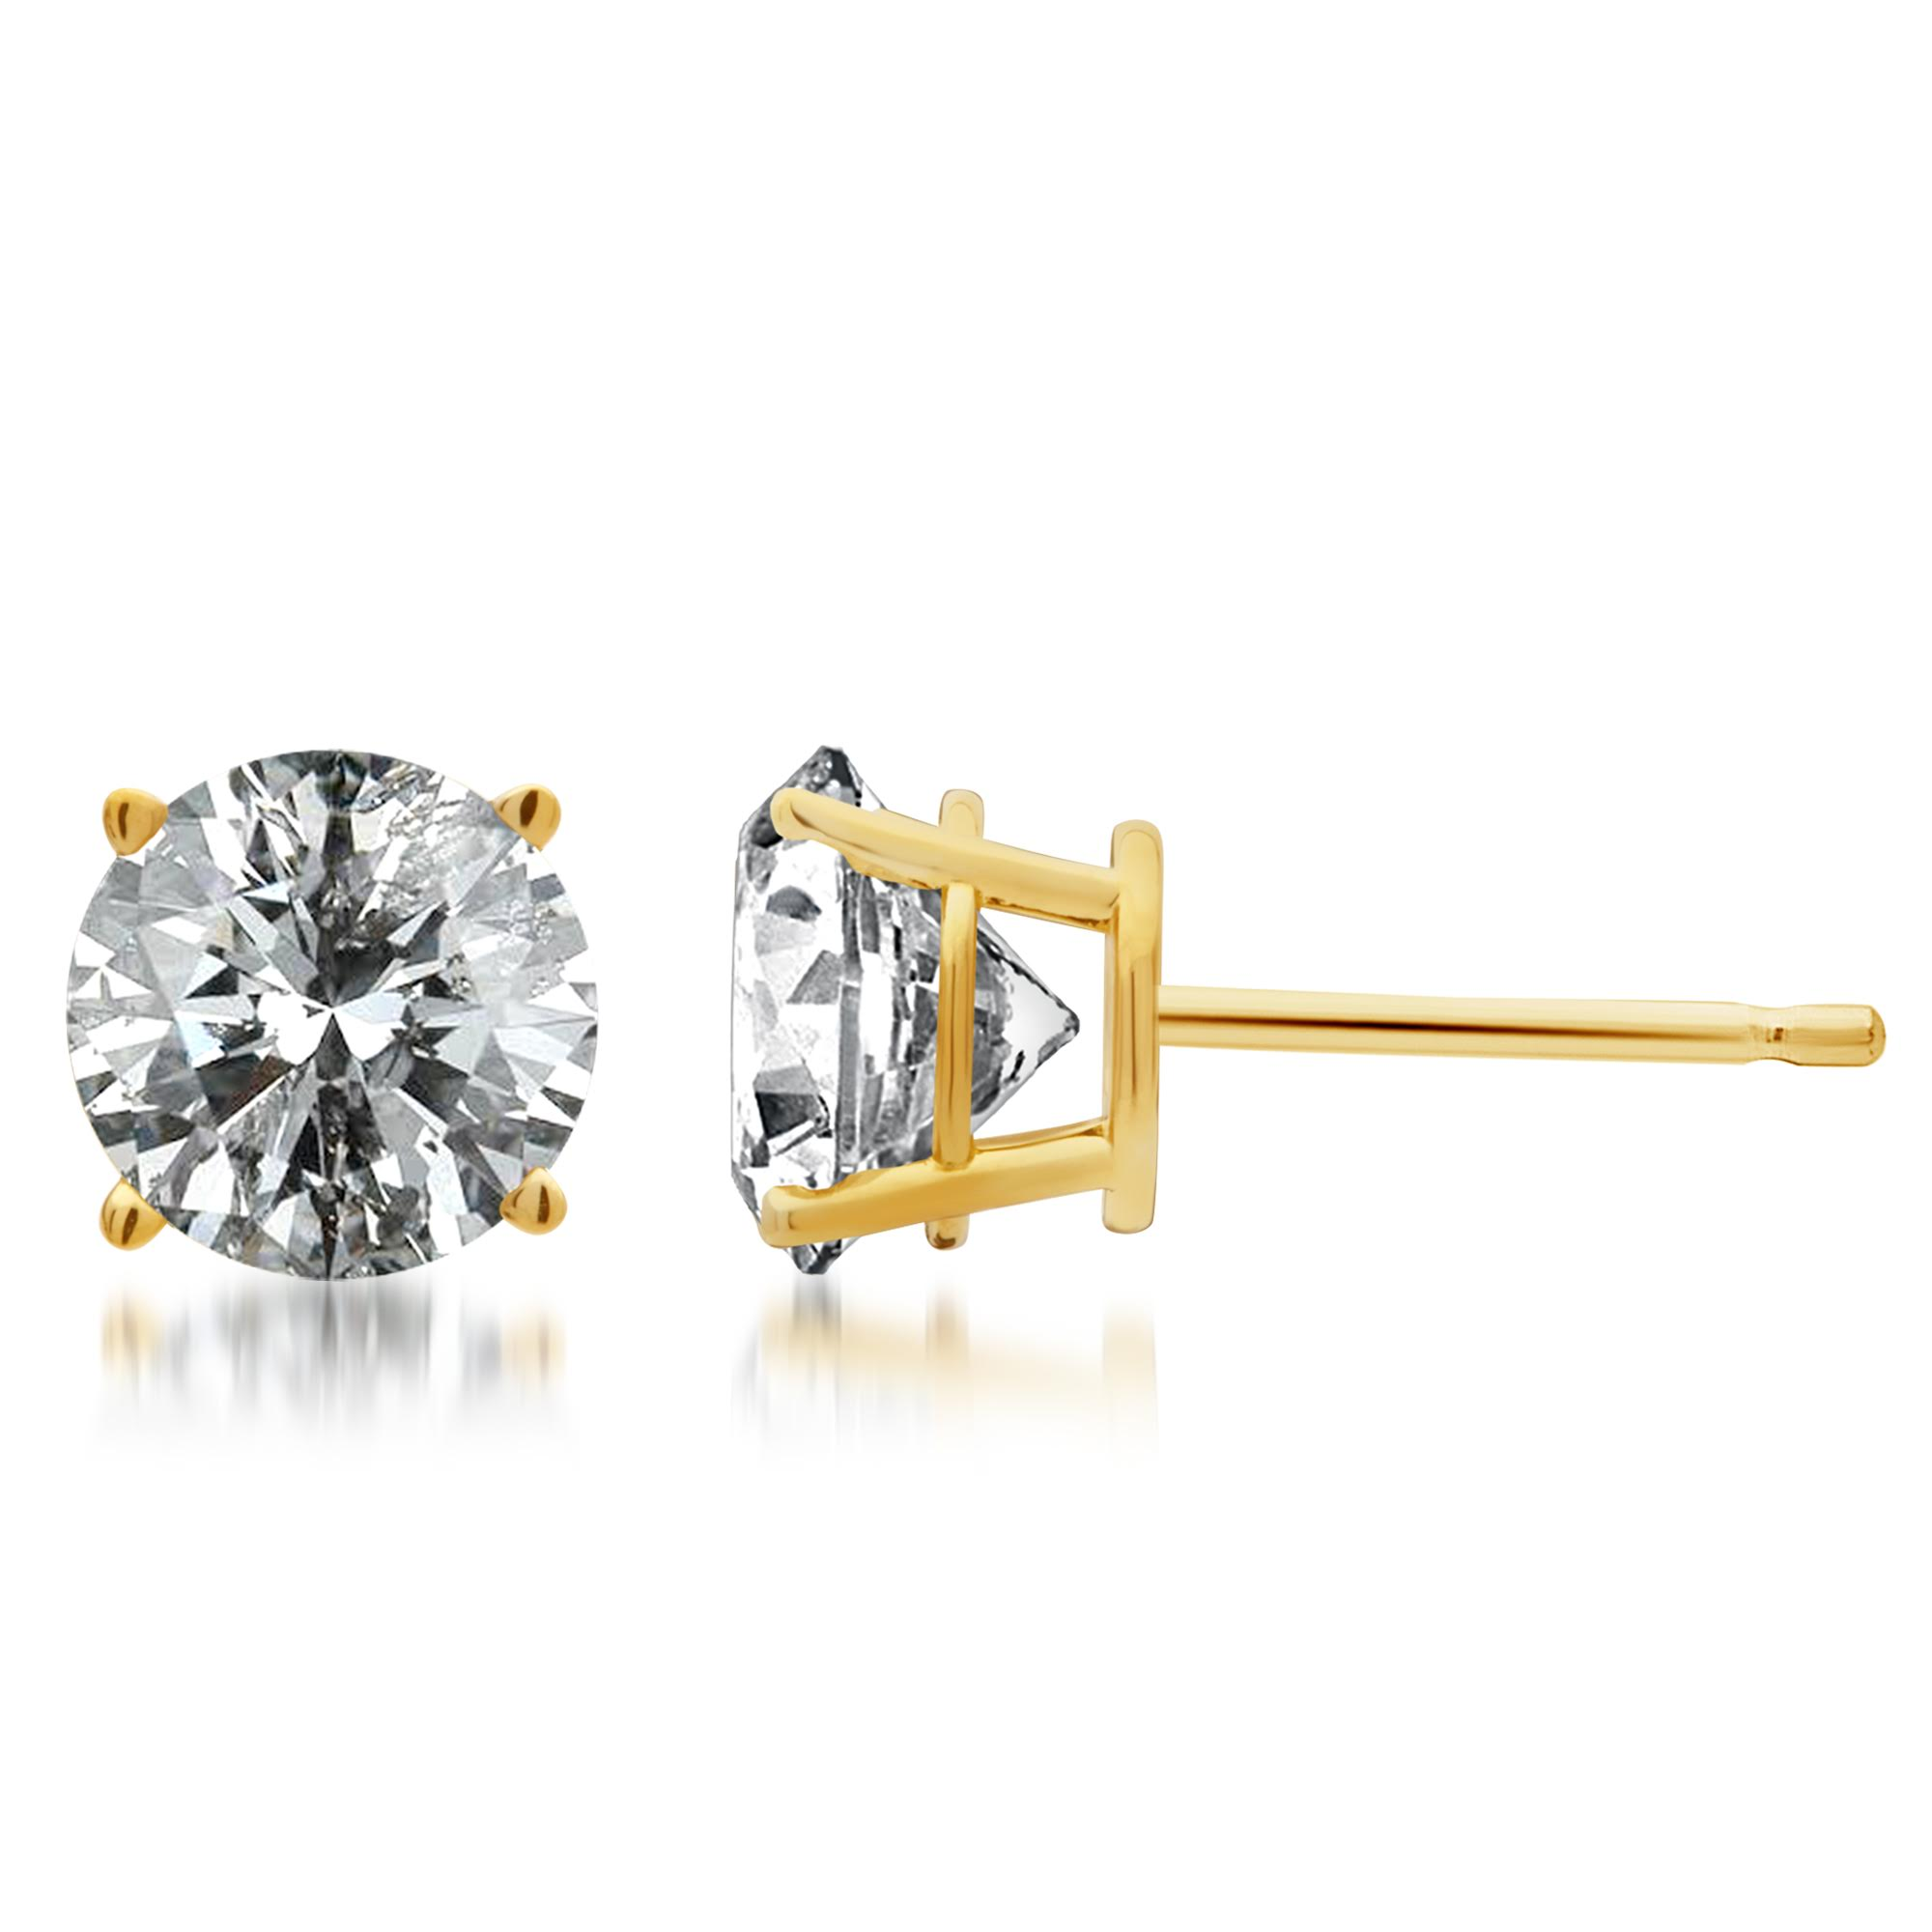 engagement jewelry solitaire fire full prong hearts s destination fine earrings koerber ring diamond your on